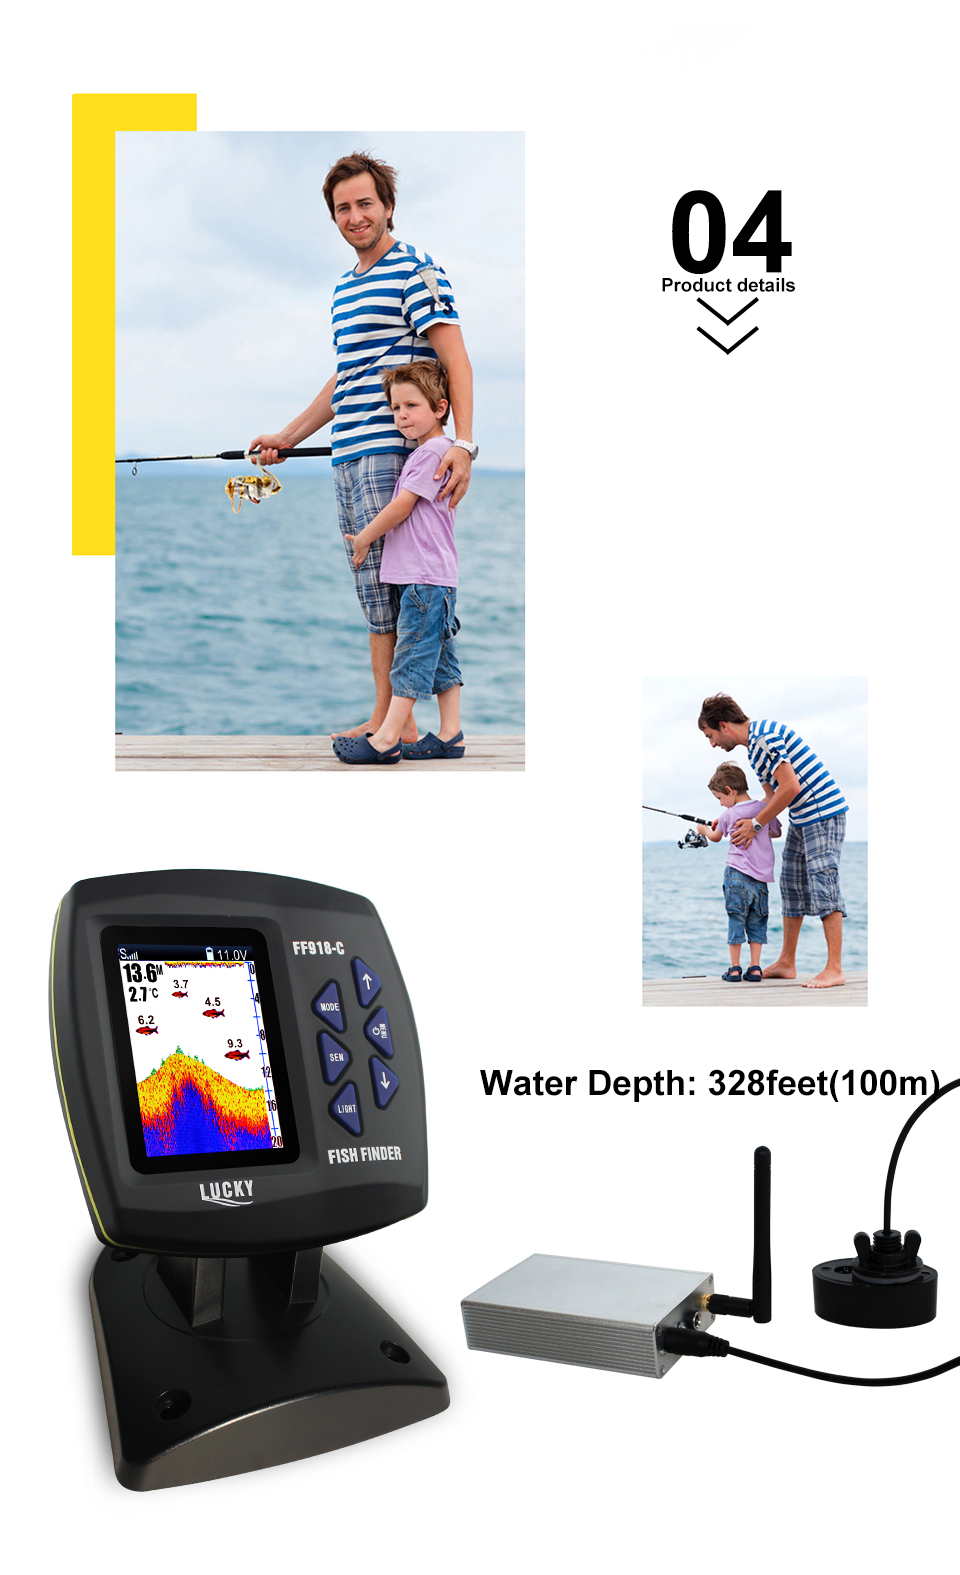 Fish Finder Lucky FF918-CWLS 3.5 LCD Boat Fish Finder wireless Underwater Detector Camera For fishing operating range 300m Depth Range 100M (5)